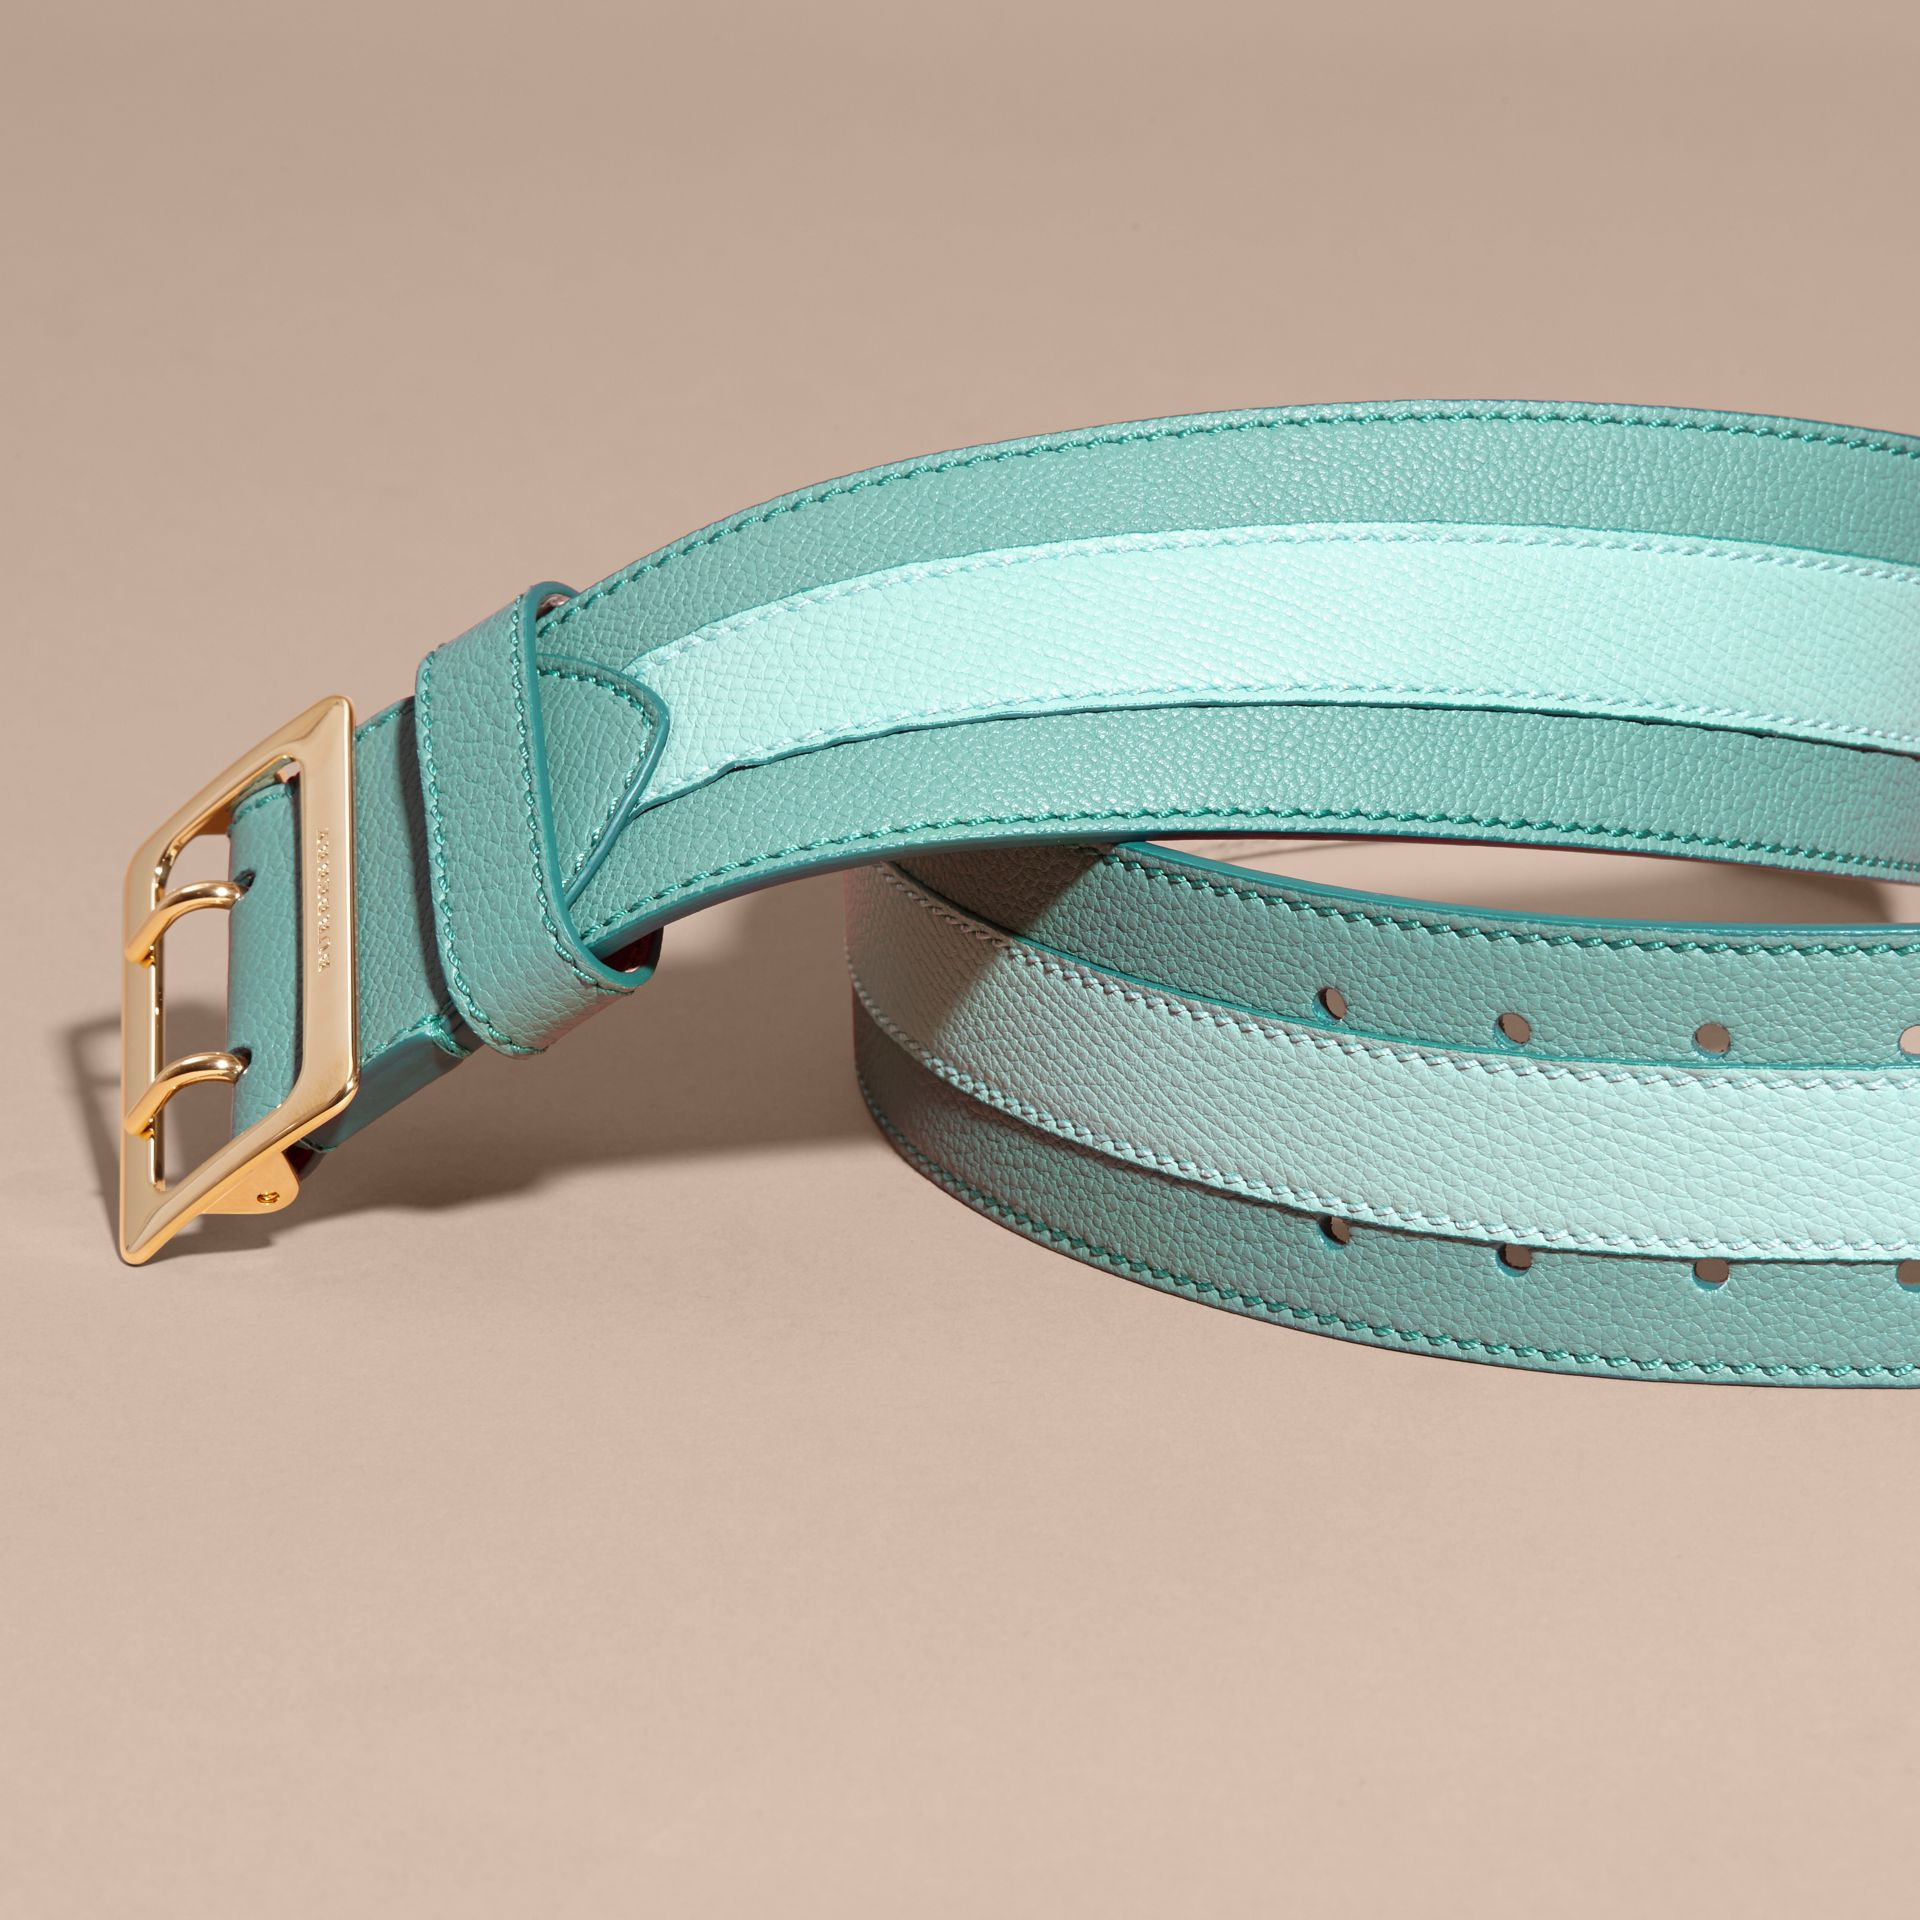 Celadon blue Appliquéd Textured Suede and Leather Belt Celadon Blue - gallery image 3